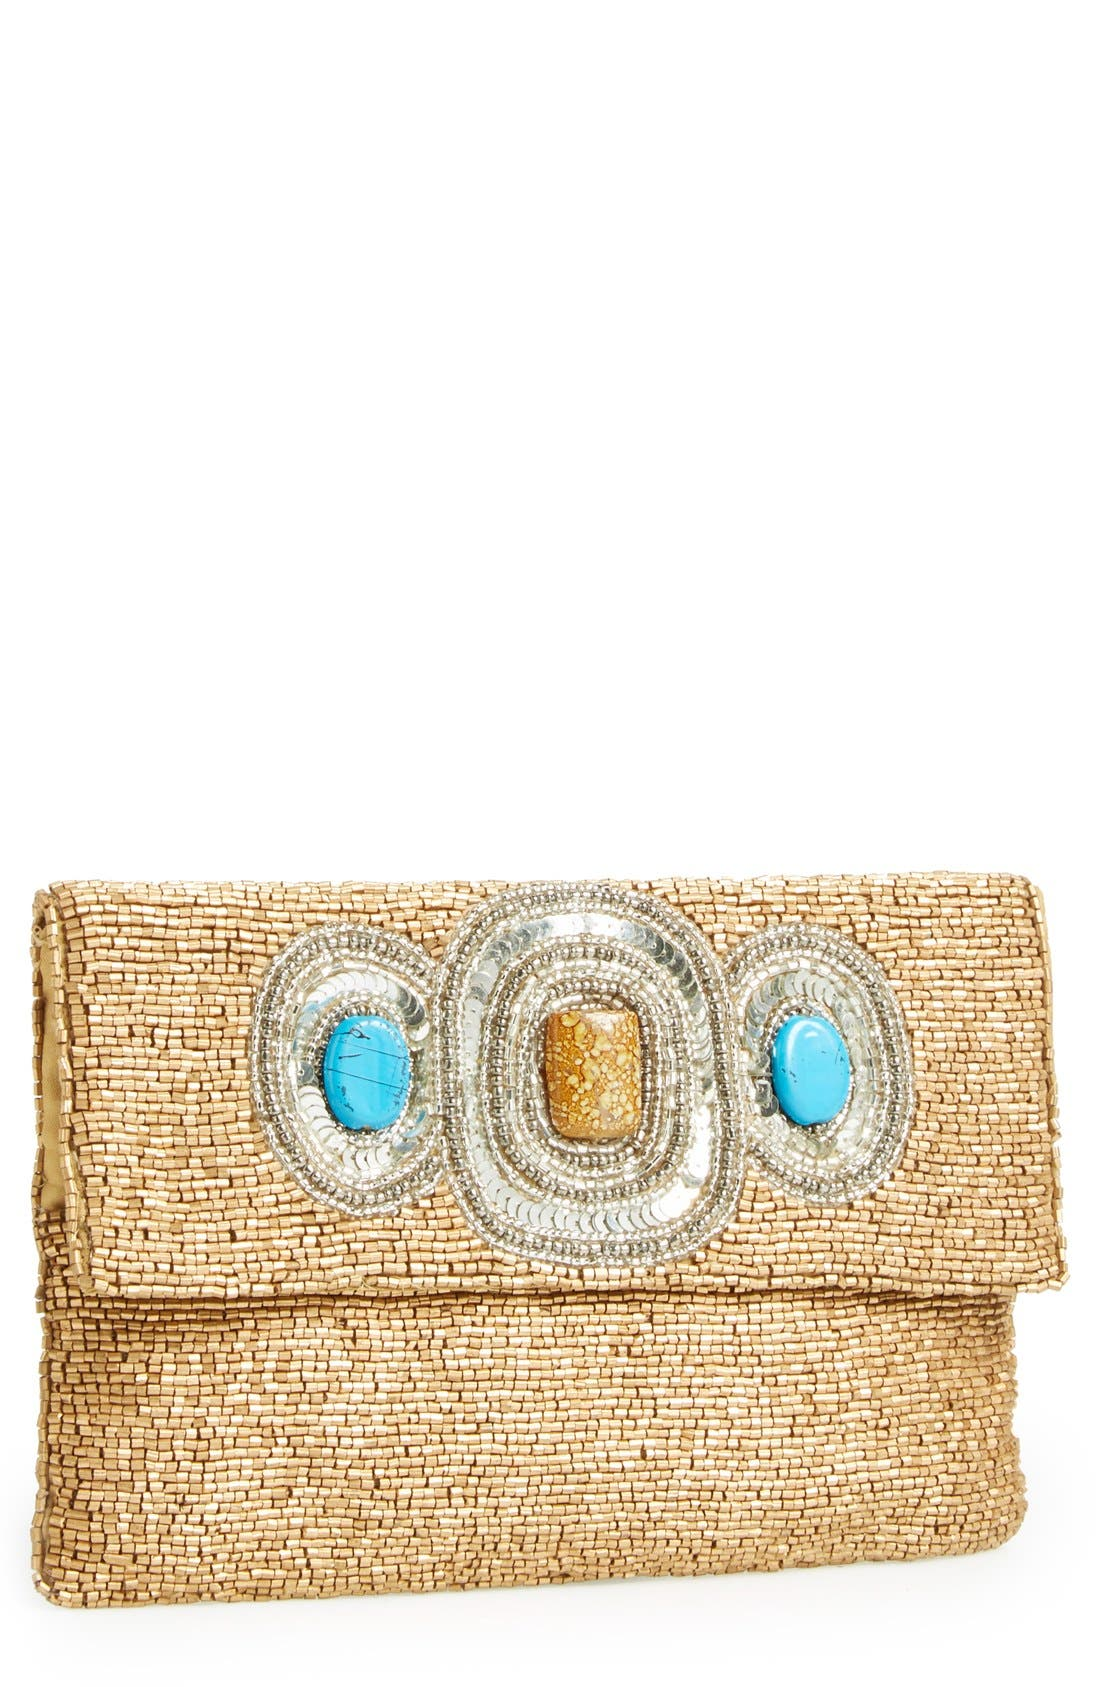 Alternate Image 1 Selected - Big Buddha Beaded Clutch